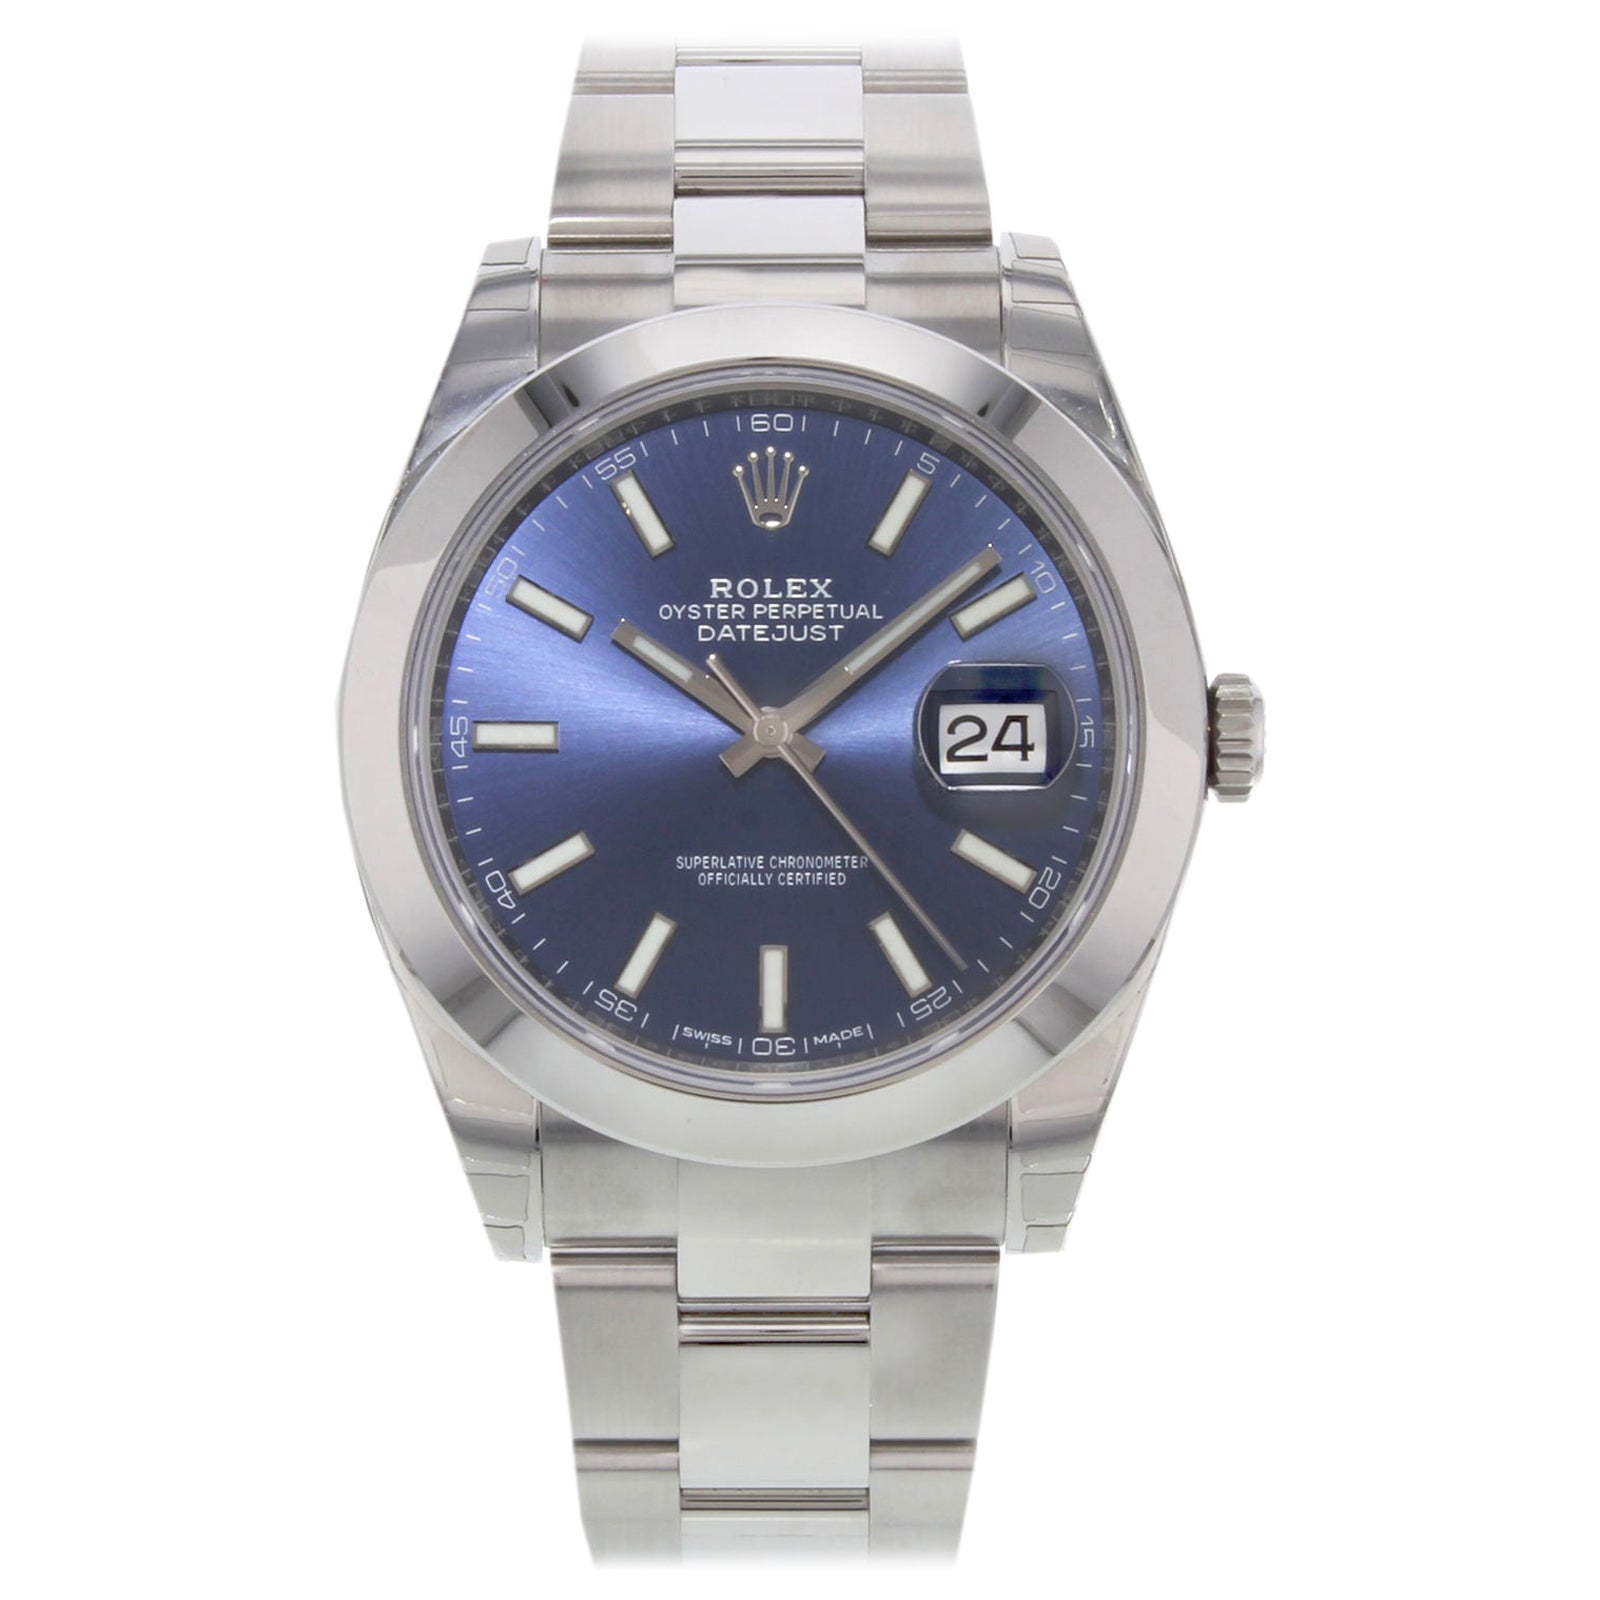 Rolex Datejust 41 126300 Blio Blue Index Stainless Steel Automatic Men's Watch